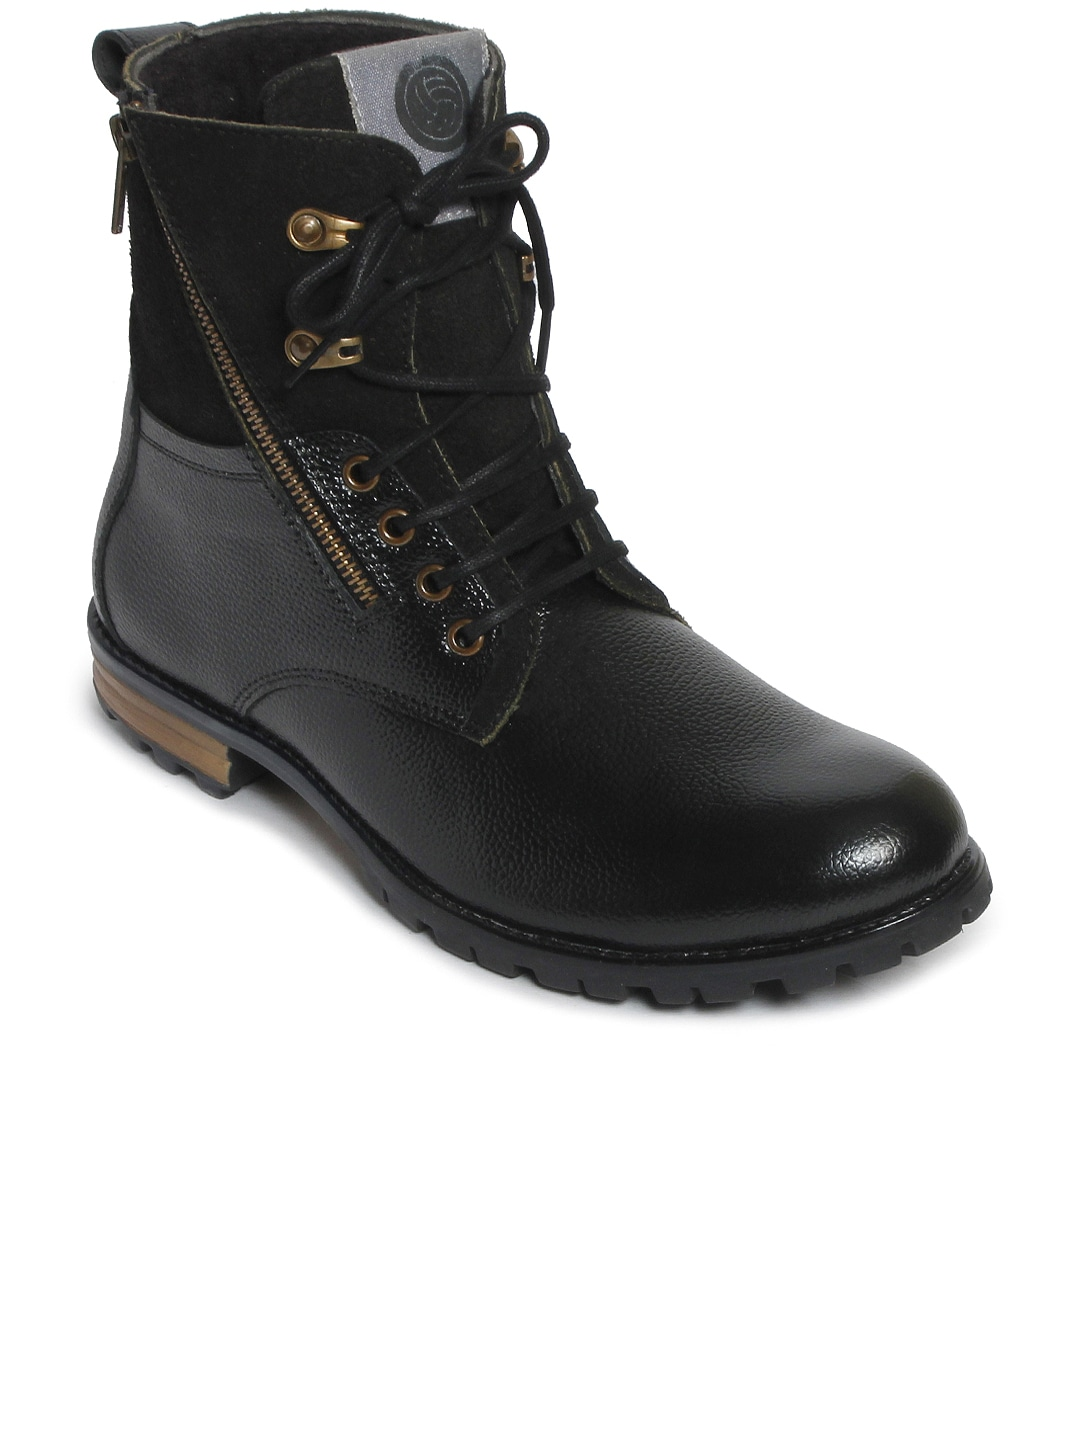 bacca bucci Men Black Solid Leather High-Top Flat Boots image